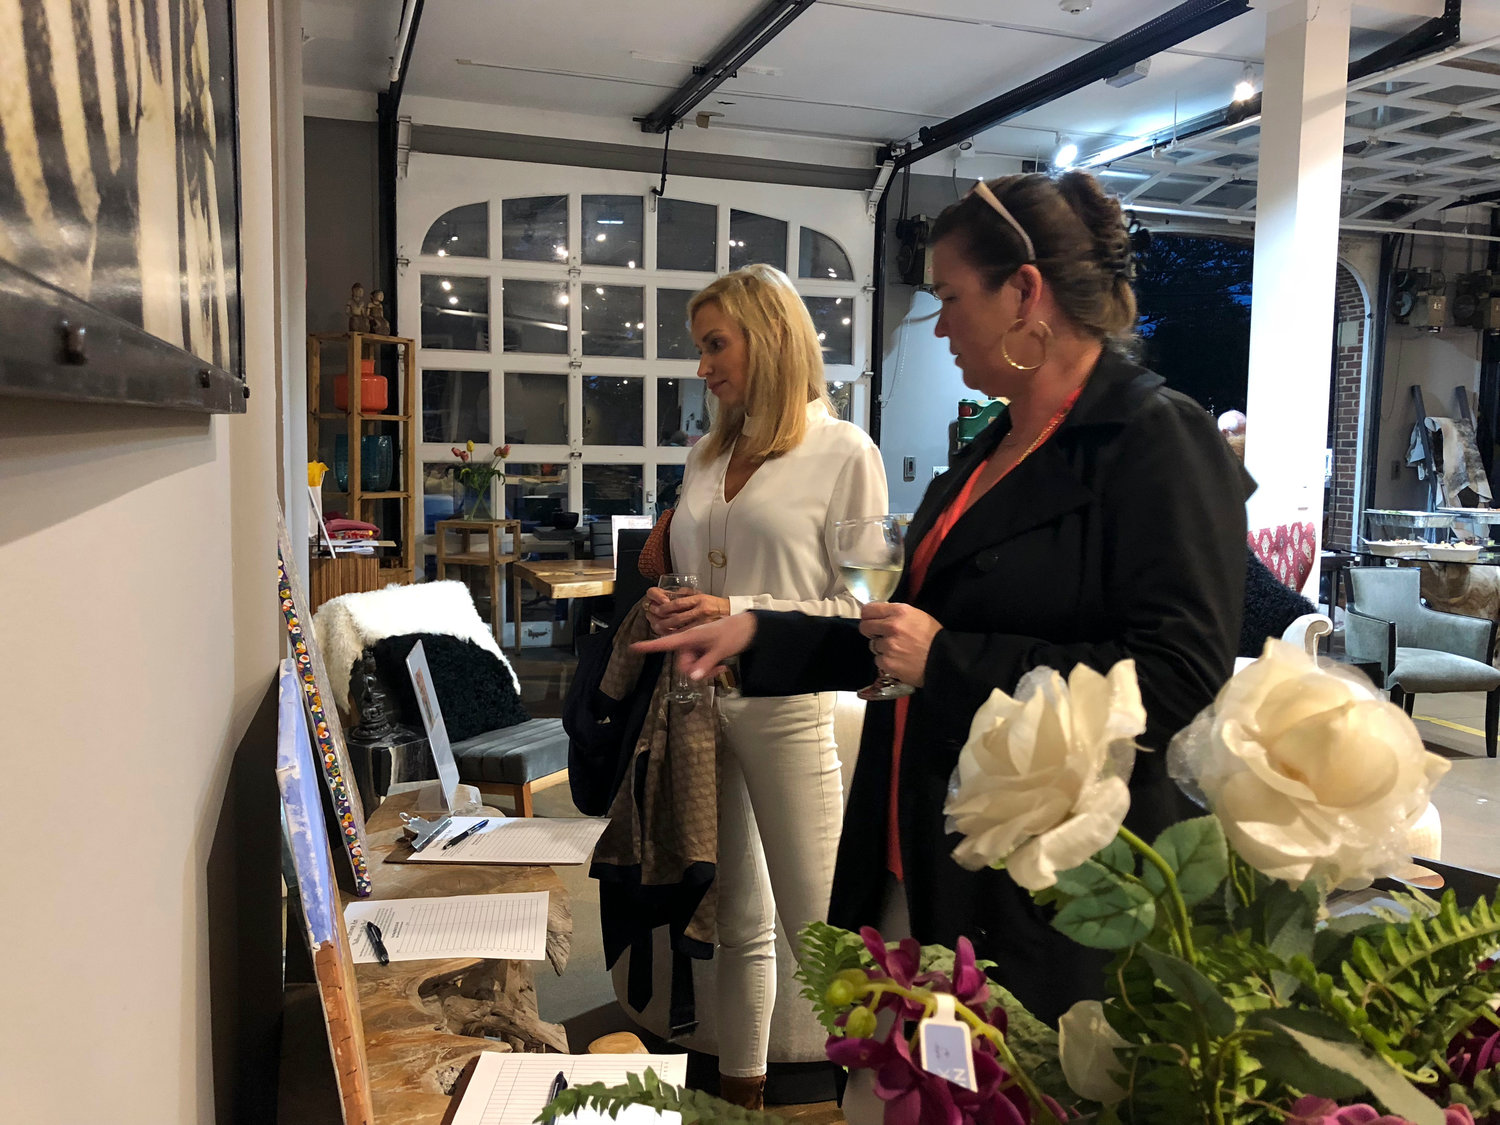 Branch realtors Christina Volz and Molly Deegan, of Sea Cliff, observed the fine art pieces up for grabs at the auction.